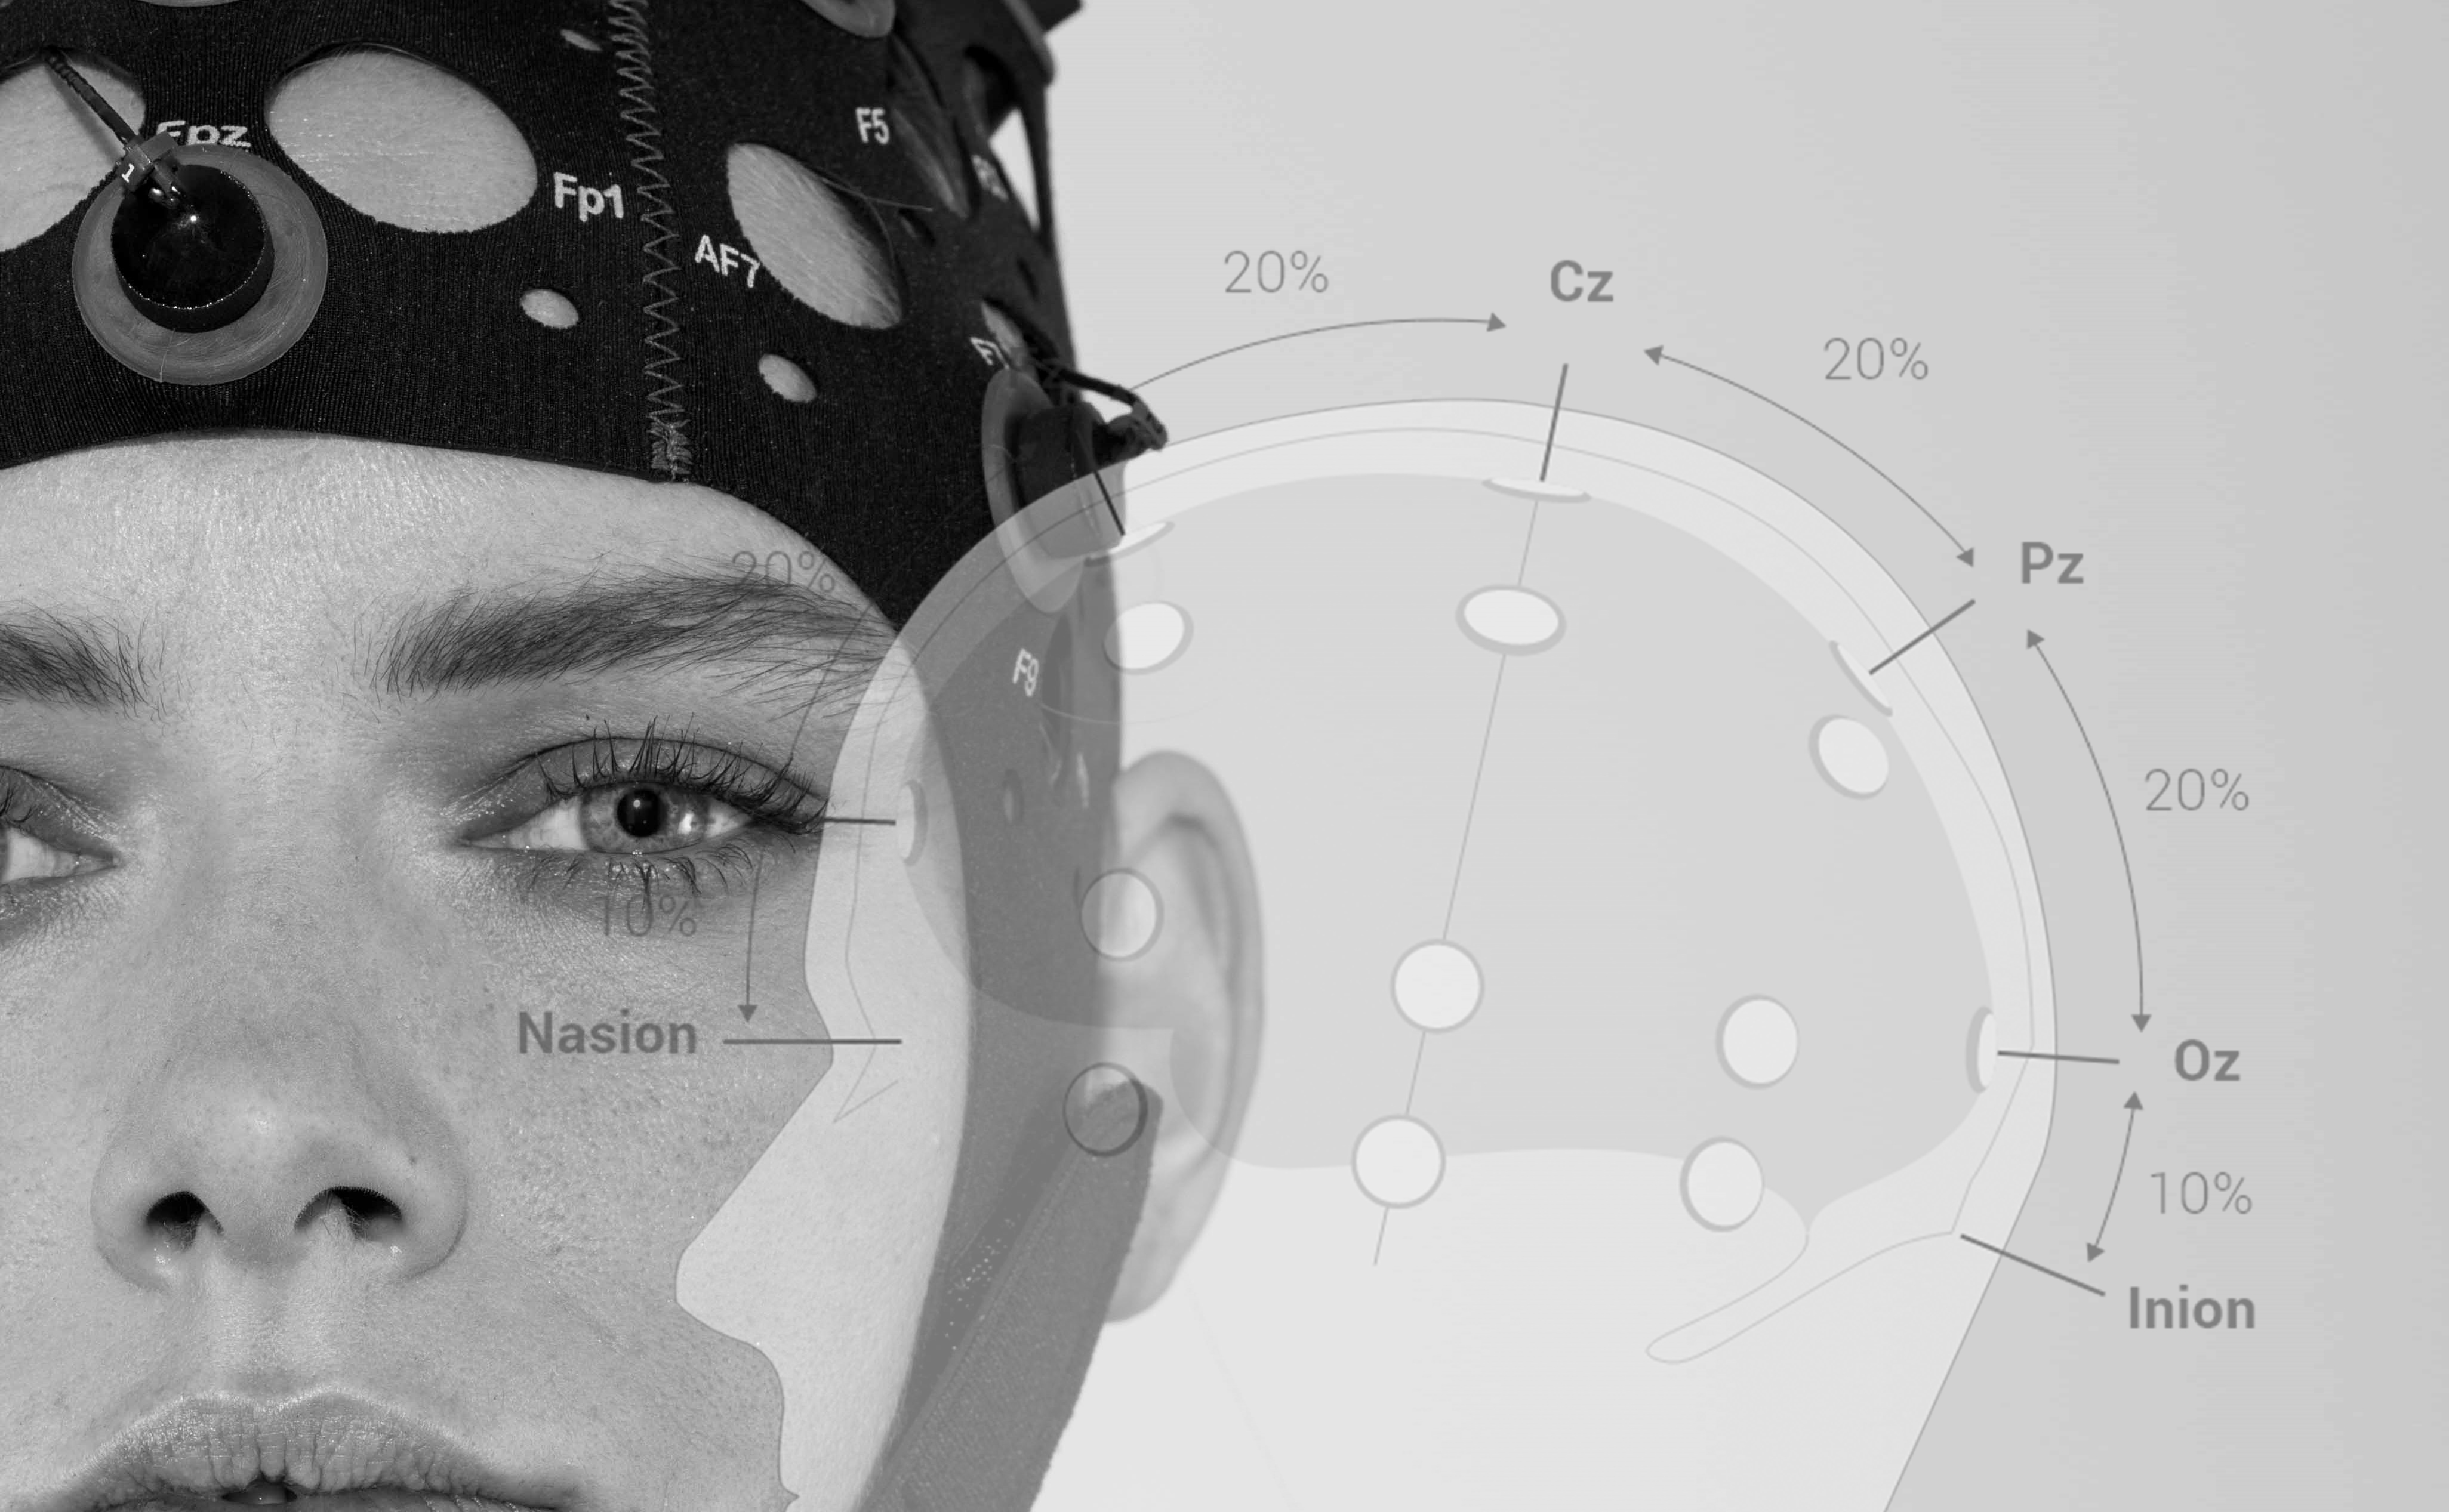 girl wih a variable EEG electrode placement